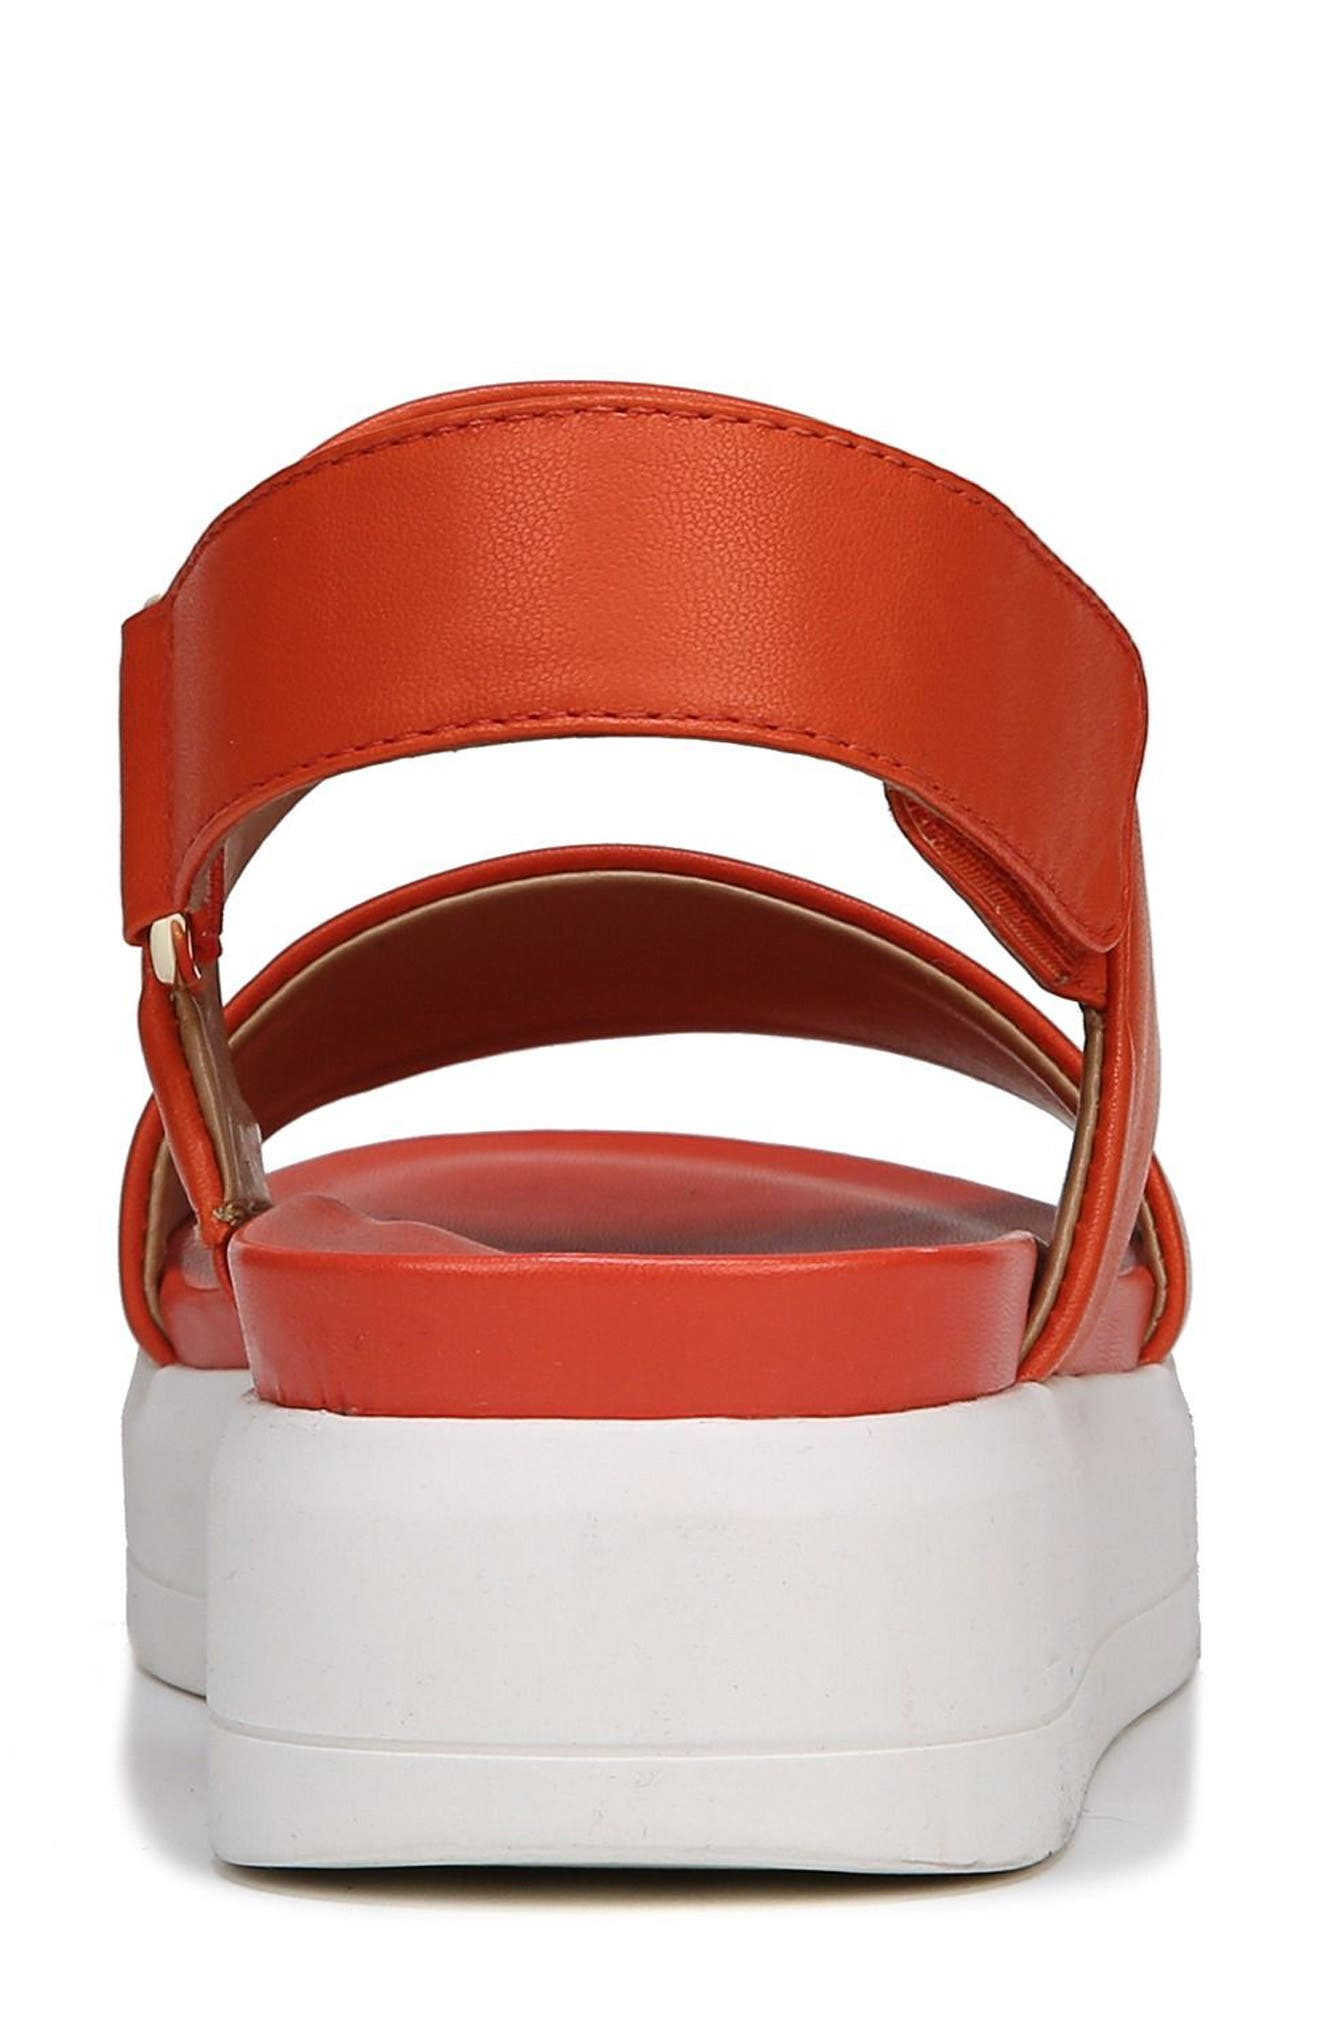 SARTO by Franco Sarto Kenan Platform Sandal,                             Alternate thumbnail 8, color,                             TANGERINE LEATHER